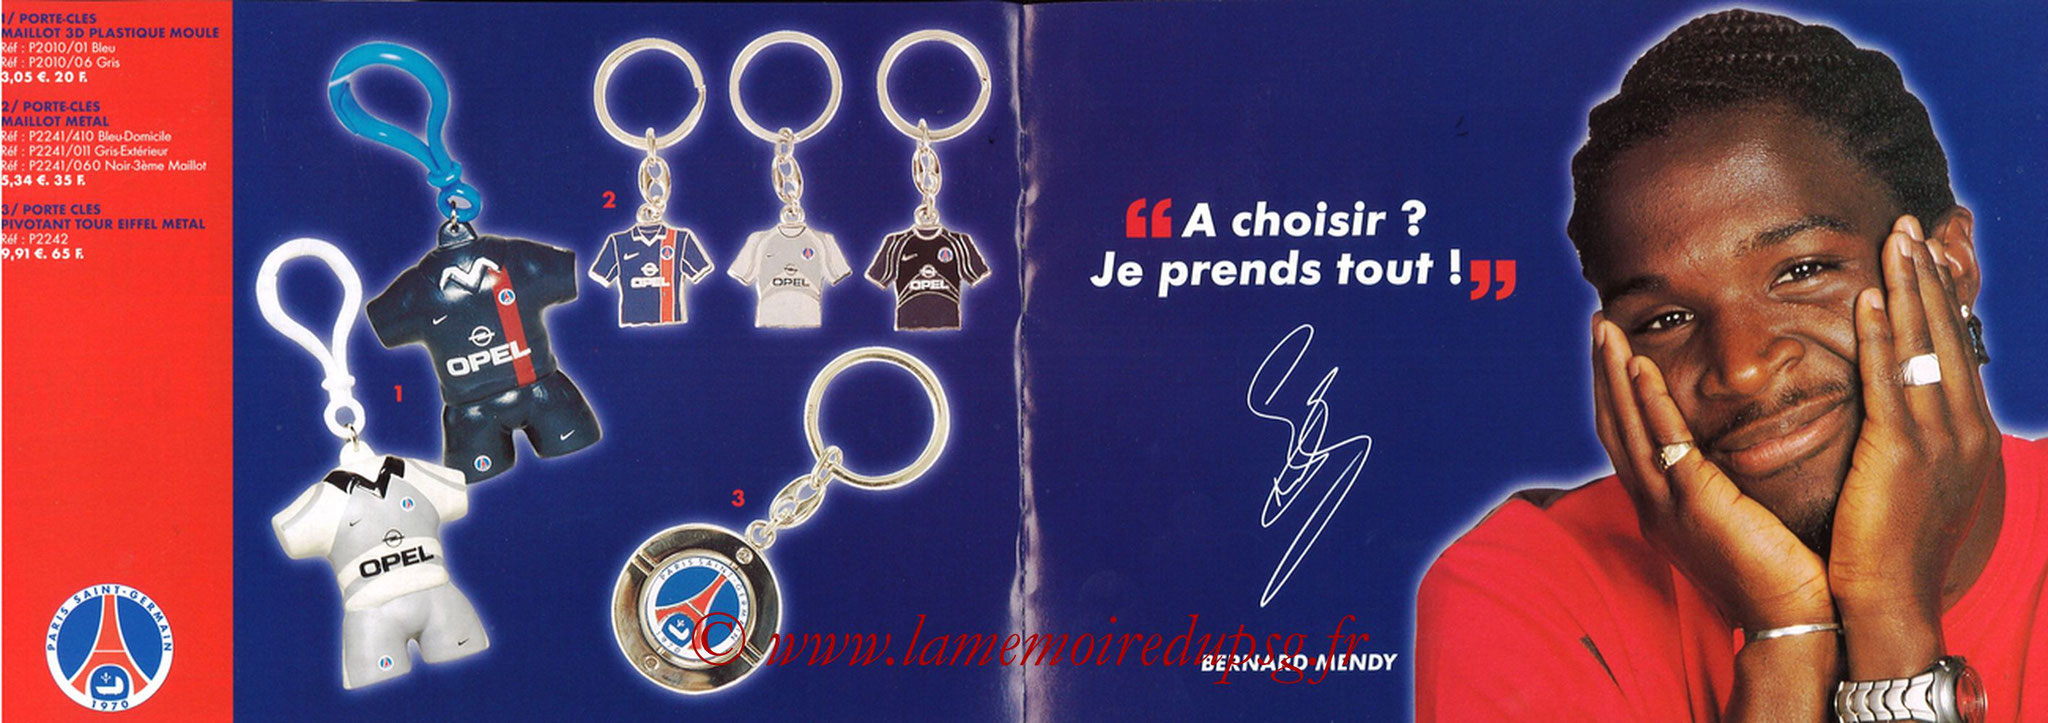 Catalogue PSG - 2001-02 - Noêl - Pages 14 et 15